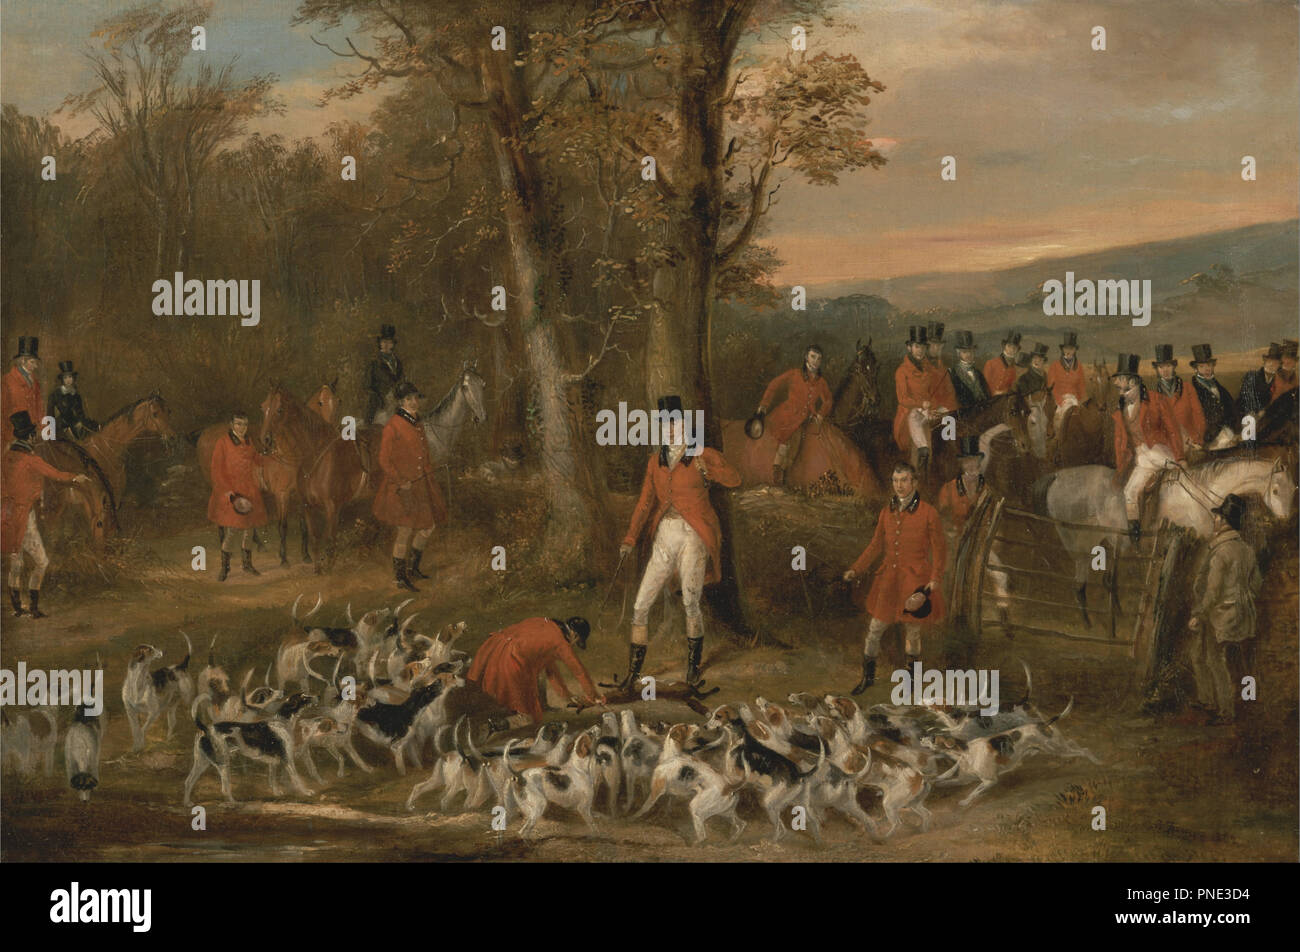 The Berkeley Hunt, 1842: The Death. Date/Period: 1842. Painting. Oil on canvas. Height: 406 mm (15.98 in); Width: 610 mm (24.01 in). Author: FRANCIS CALCRAFT TURNER. Stock Photo